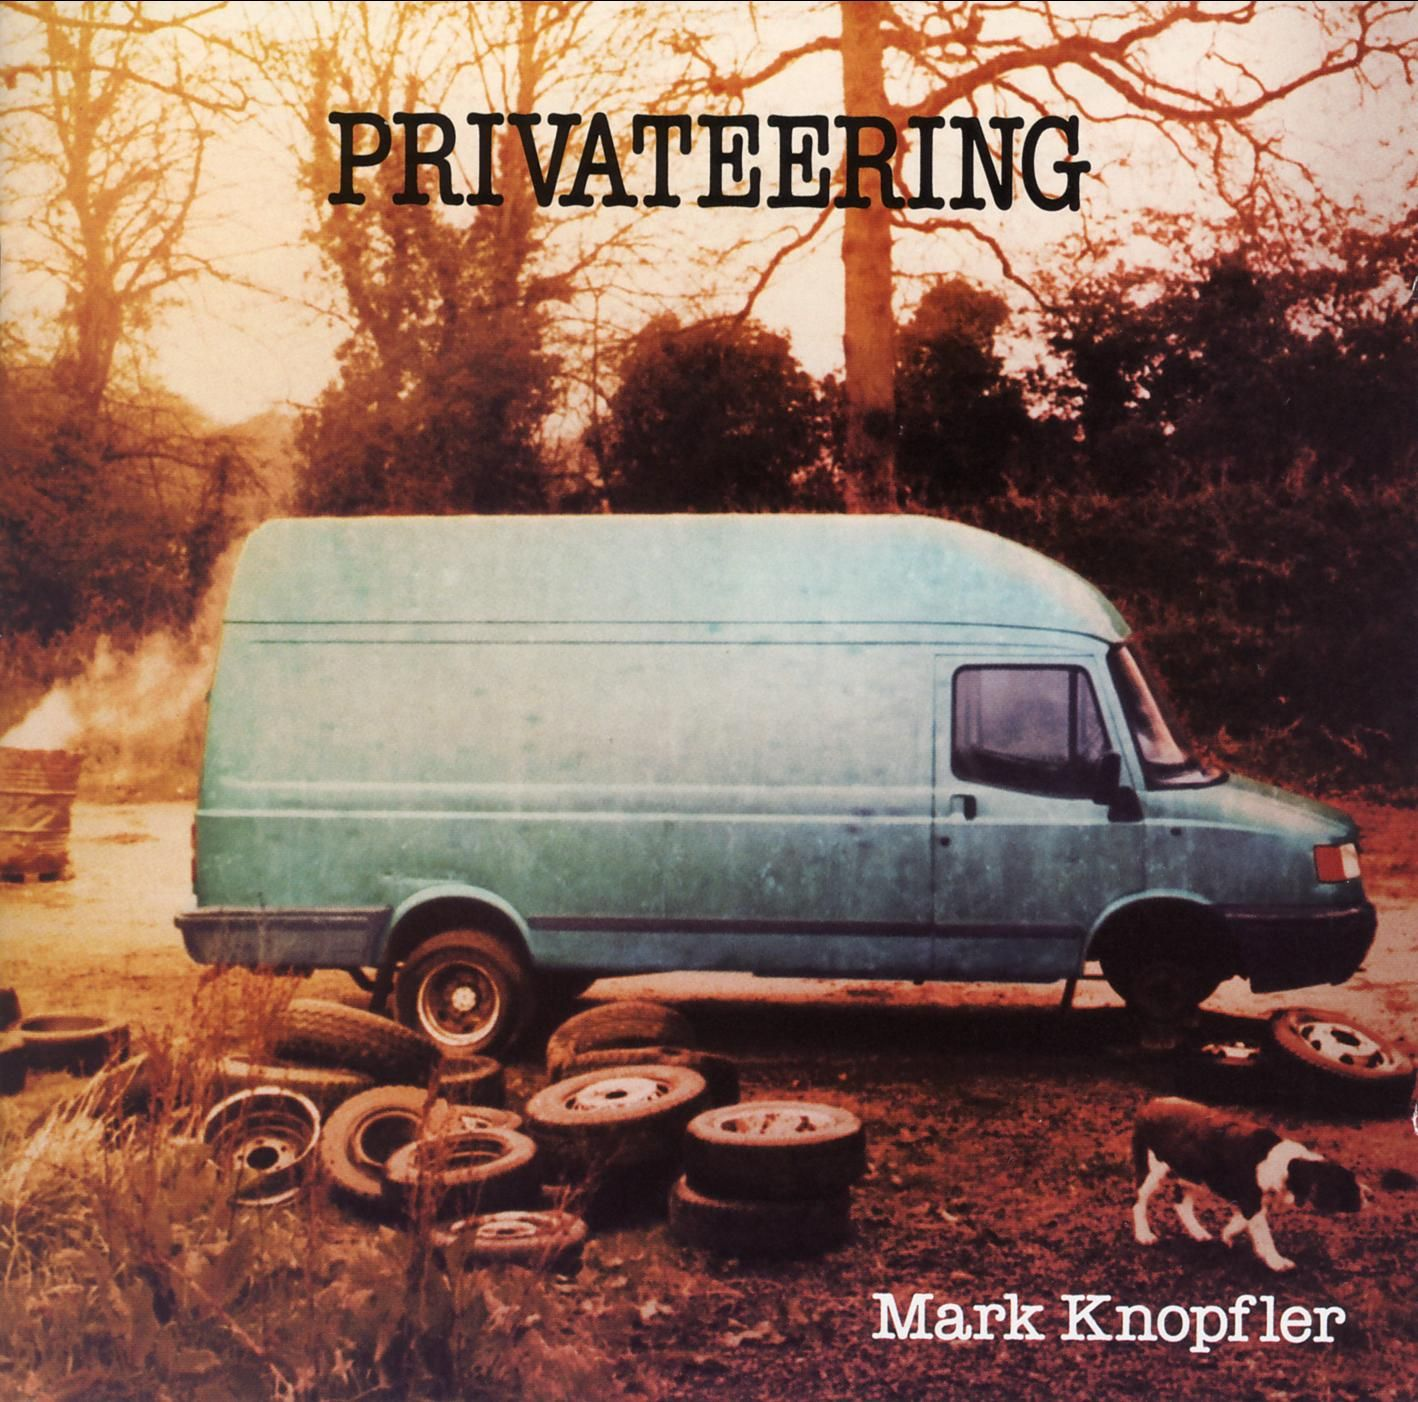 Mark Knopfler - Privateering album cover